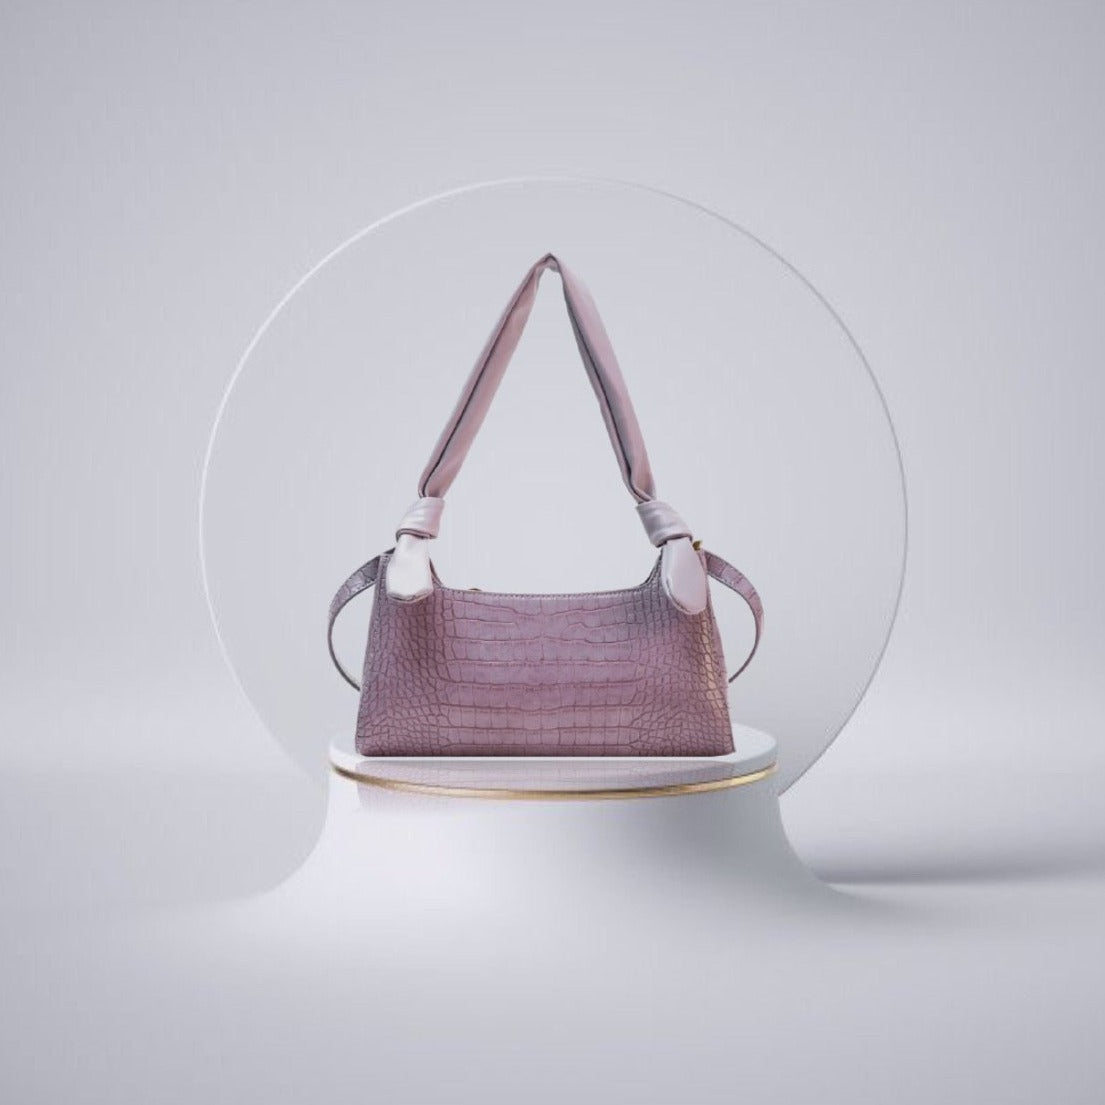 LILLIE Croc Pattern PU Leather Bag